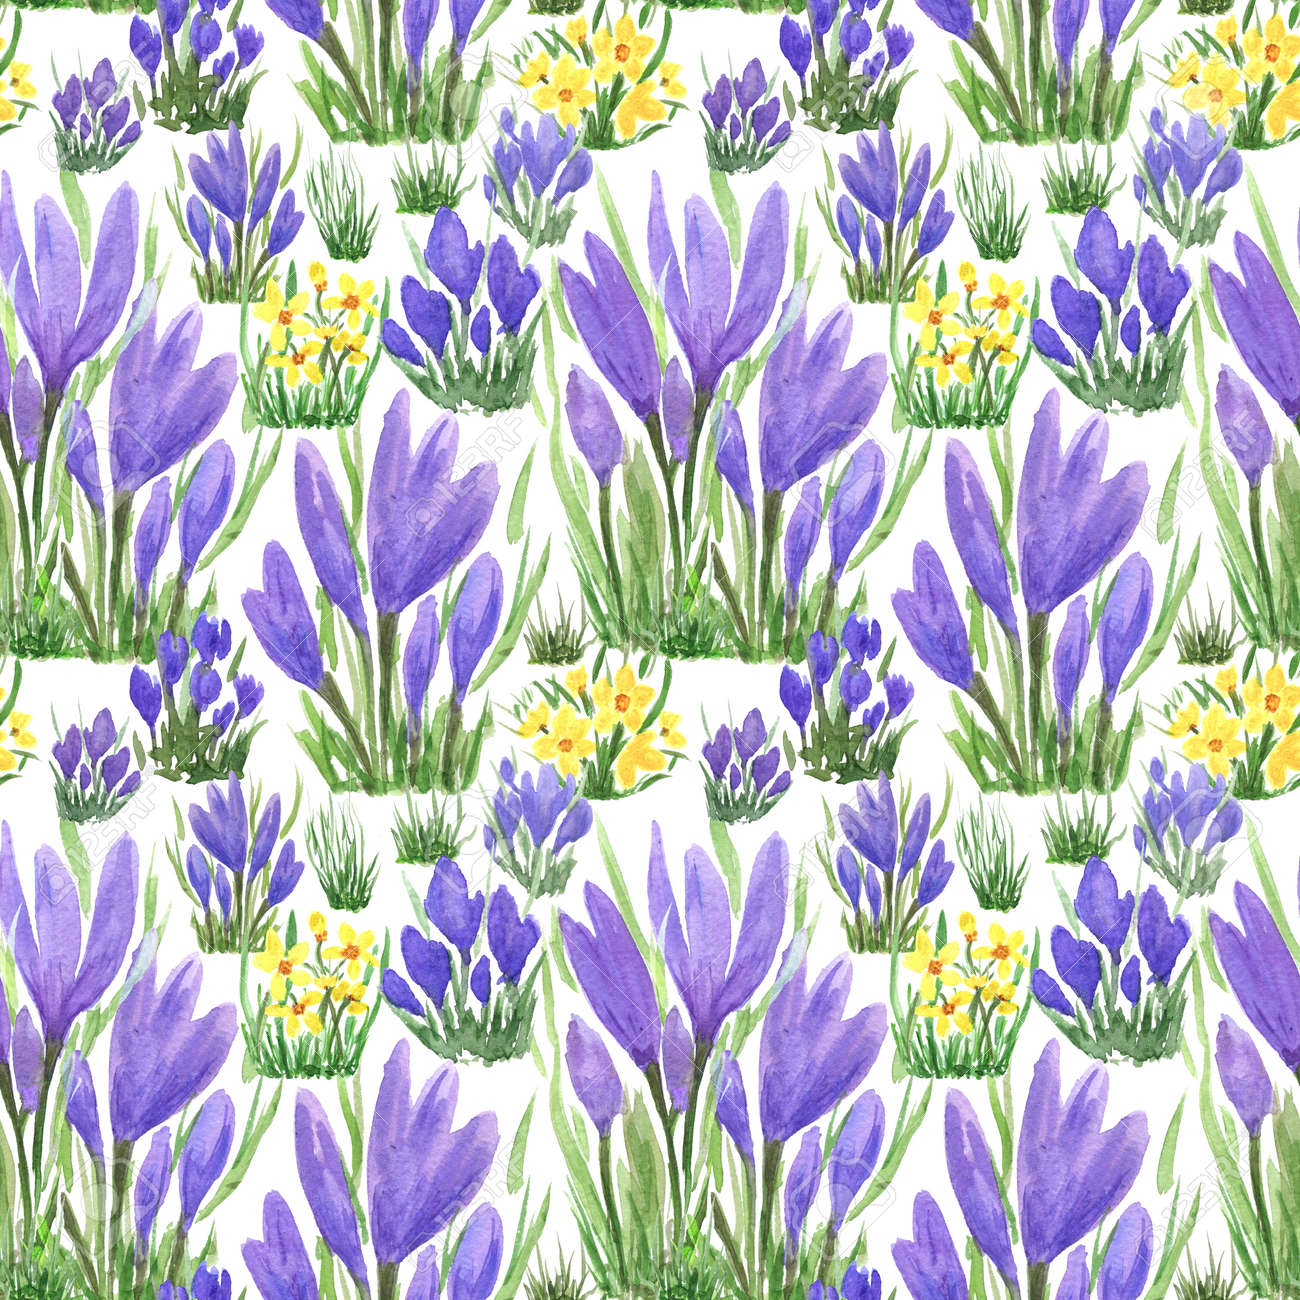 Waterclor colorful seamless pattern of spring flowers. Hand Illustration for creating fabrics, textile, decoupage, wallpapers, print, gift wrapping paper, invitations, textile, scrapbooking. Isolated on white background. - 165694549